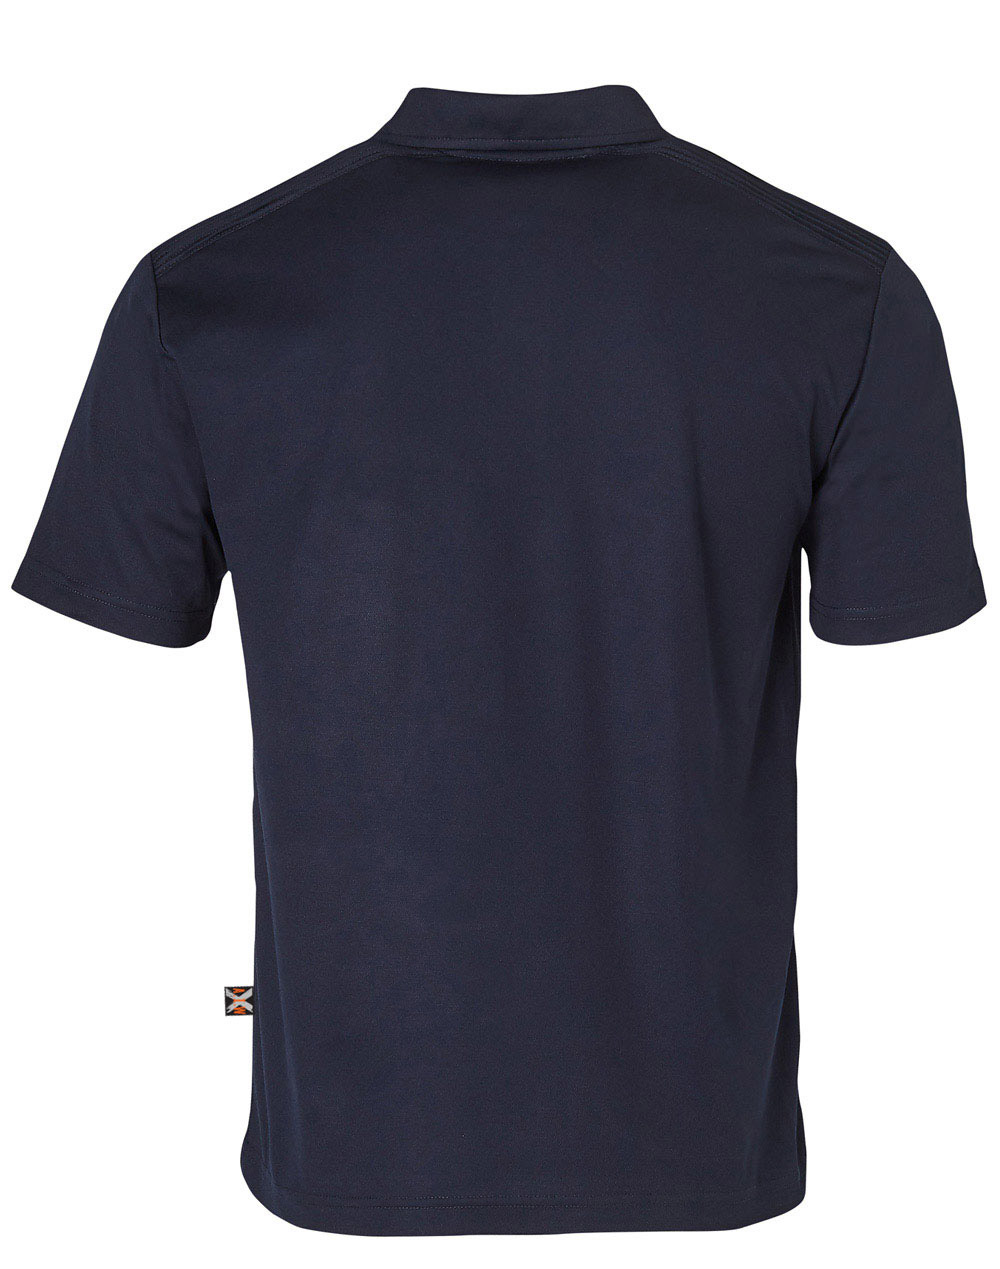 https://s3-ap-southeast-1.amazonaws.com/ws-imgs/WORKWEAR/PS209_Navy_Back.jpg